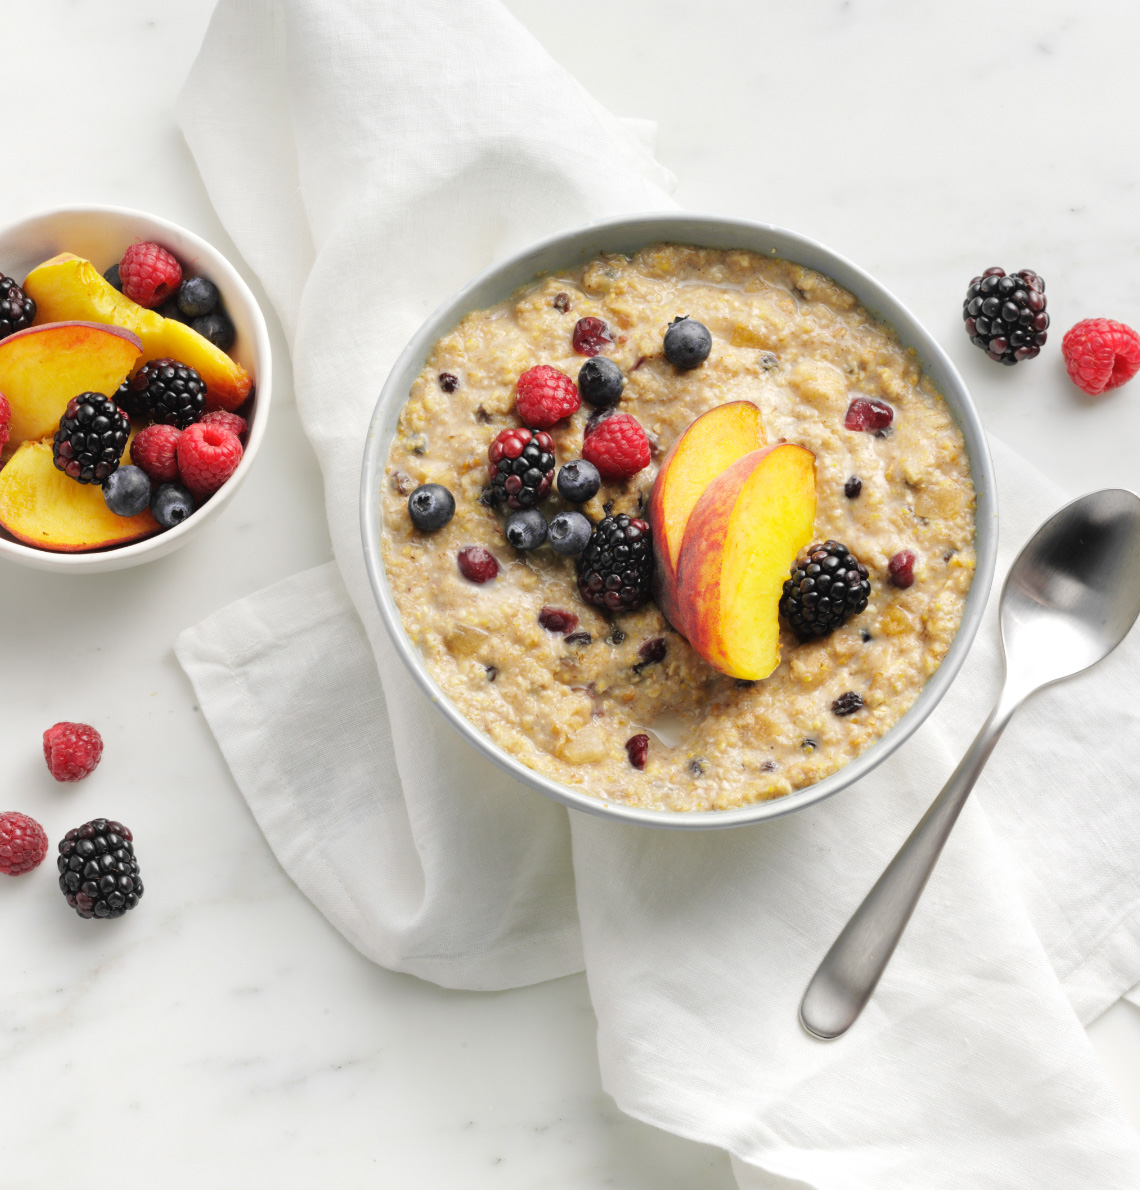 Bowl of HMR hot cereal prepared with fresh berries and sliced fruit